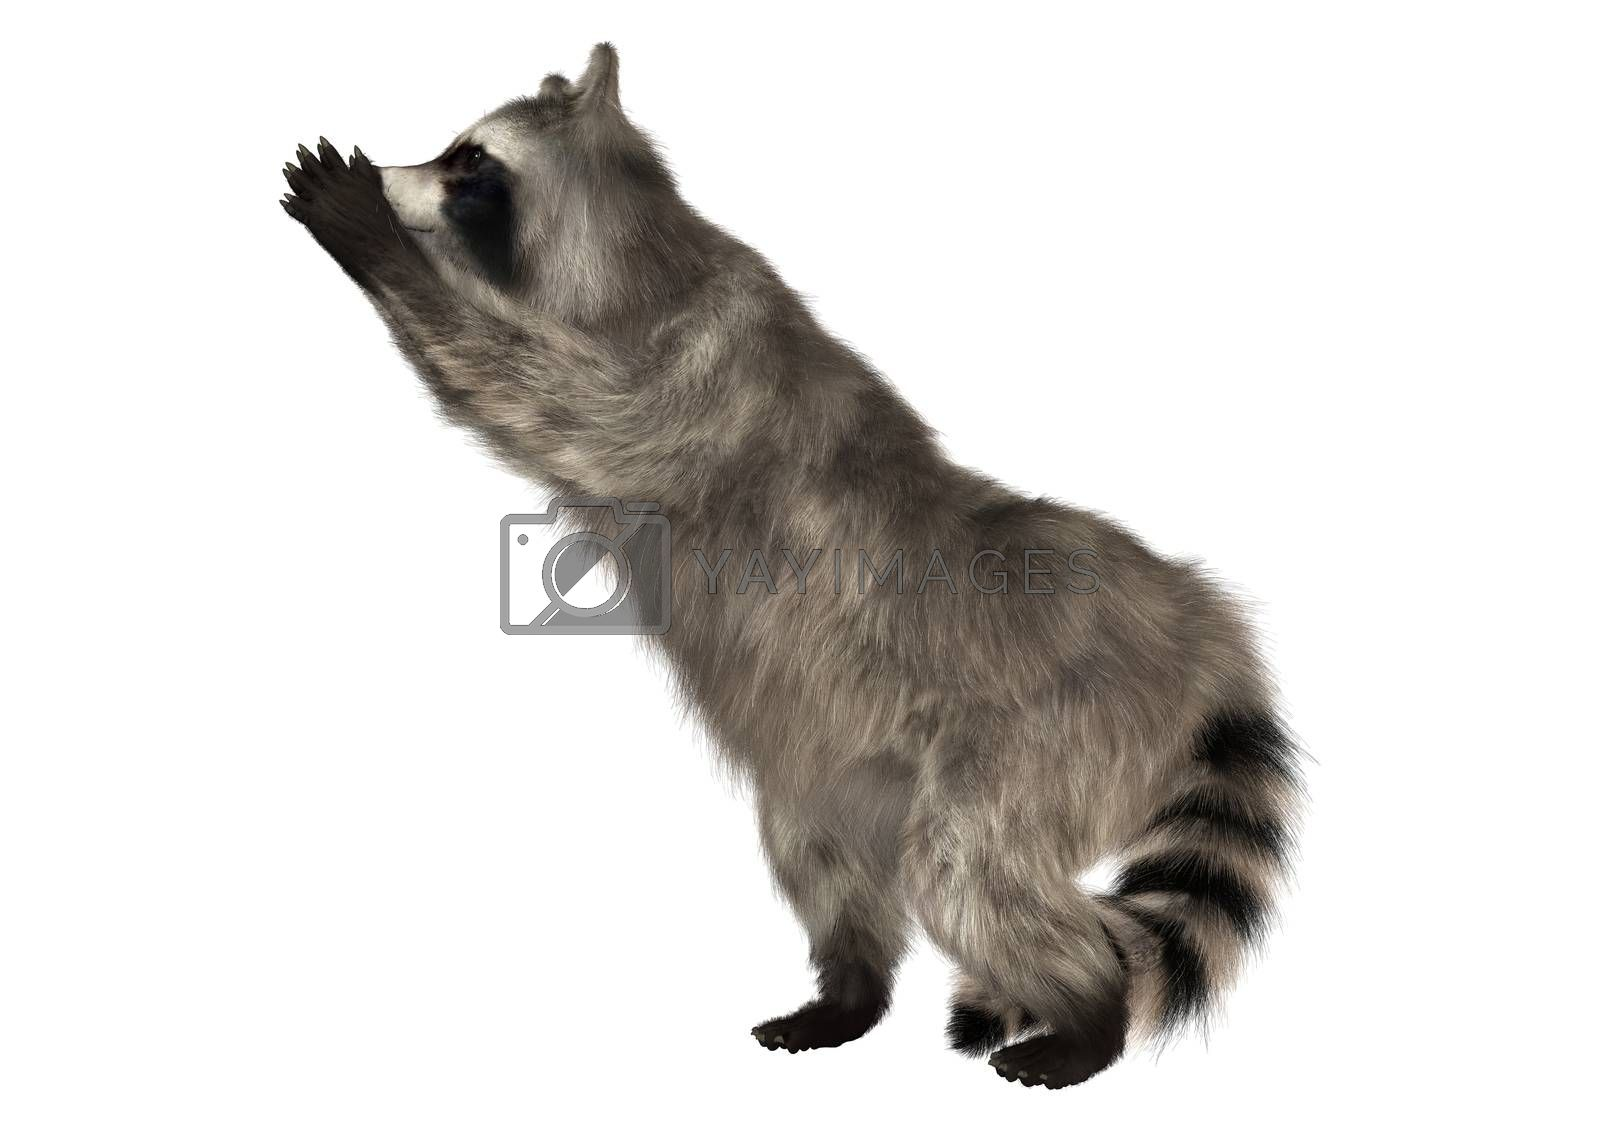 3D digital render of a raccoon iisolated on white background